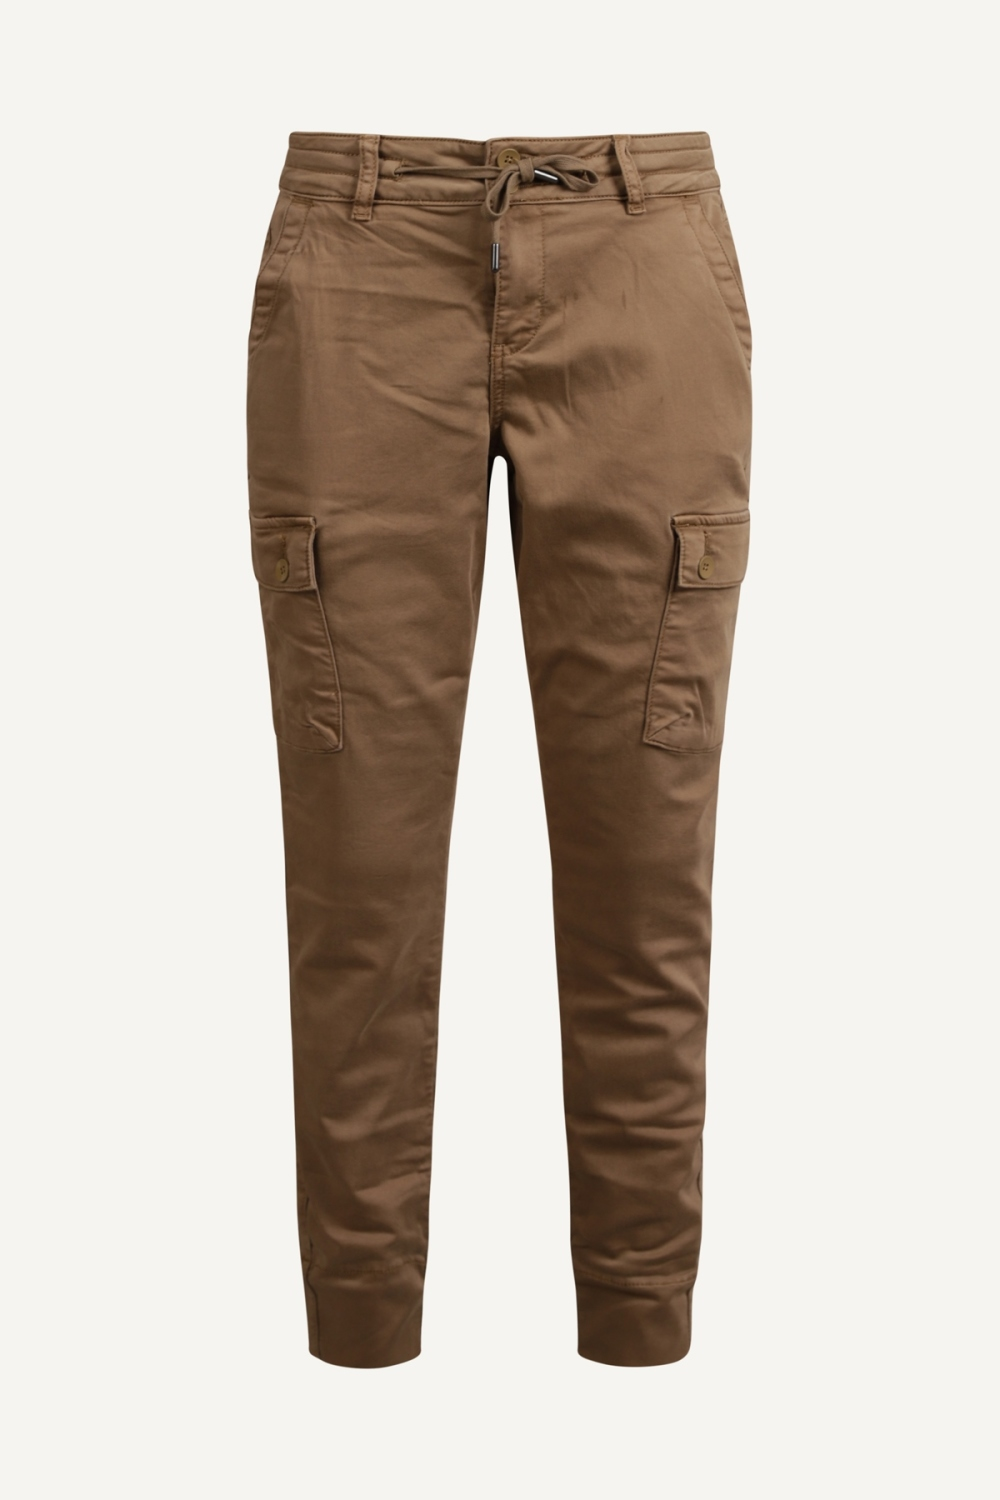 Red Button Broek Camel Combat